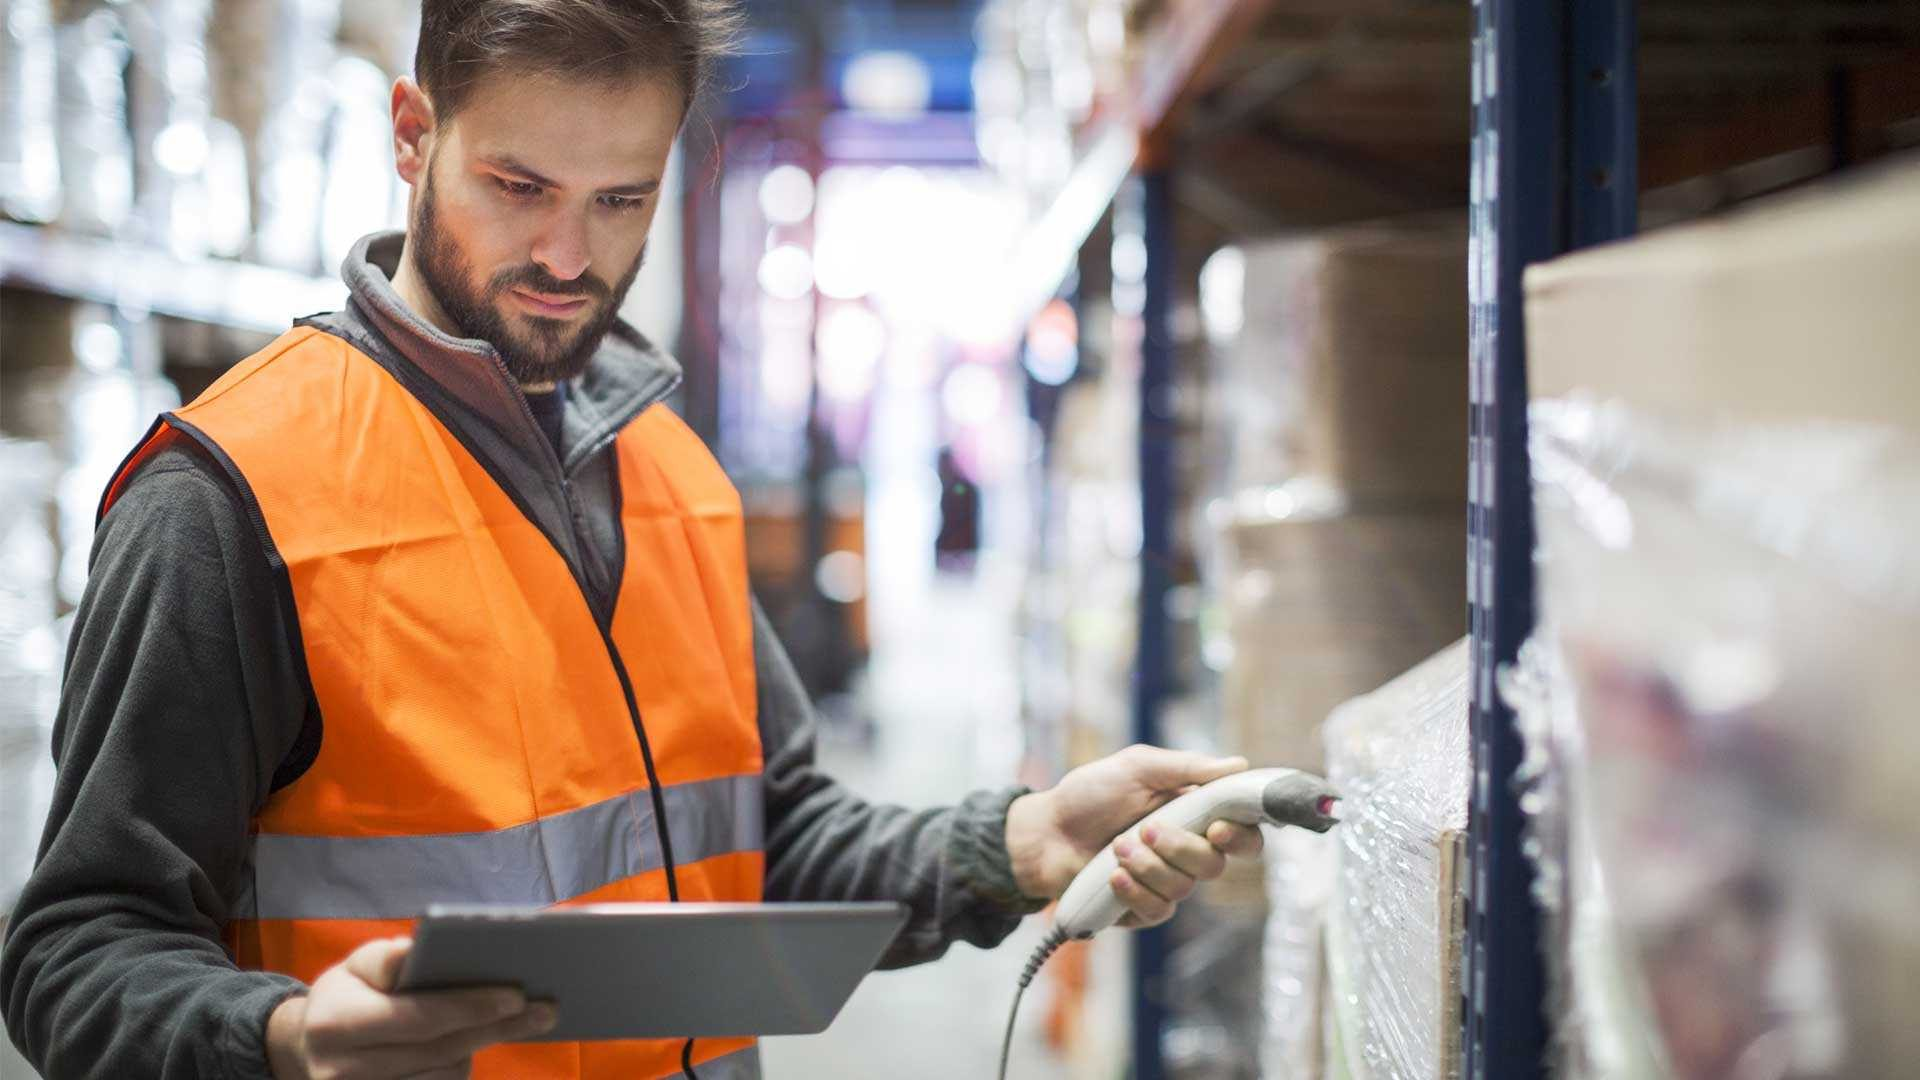 Photo of a man in warehouse scanning parcel